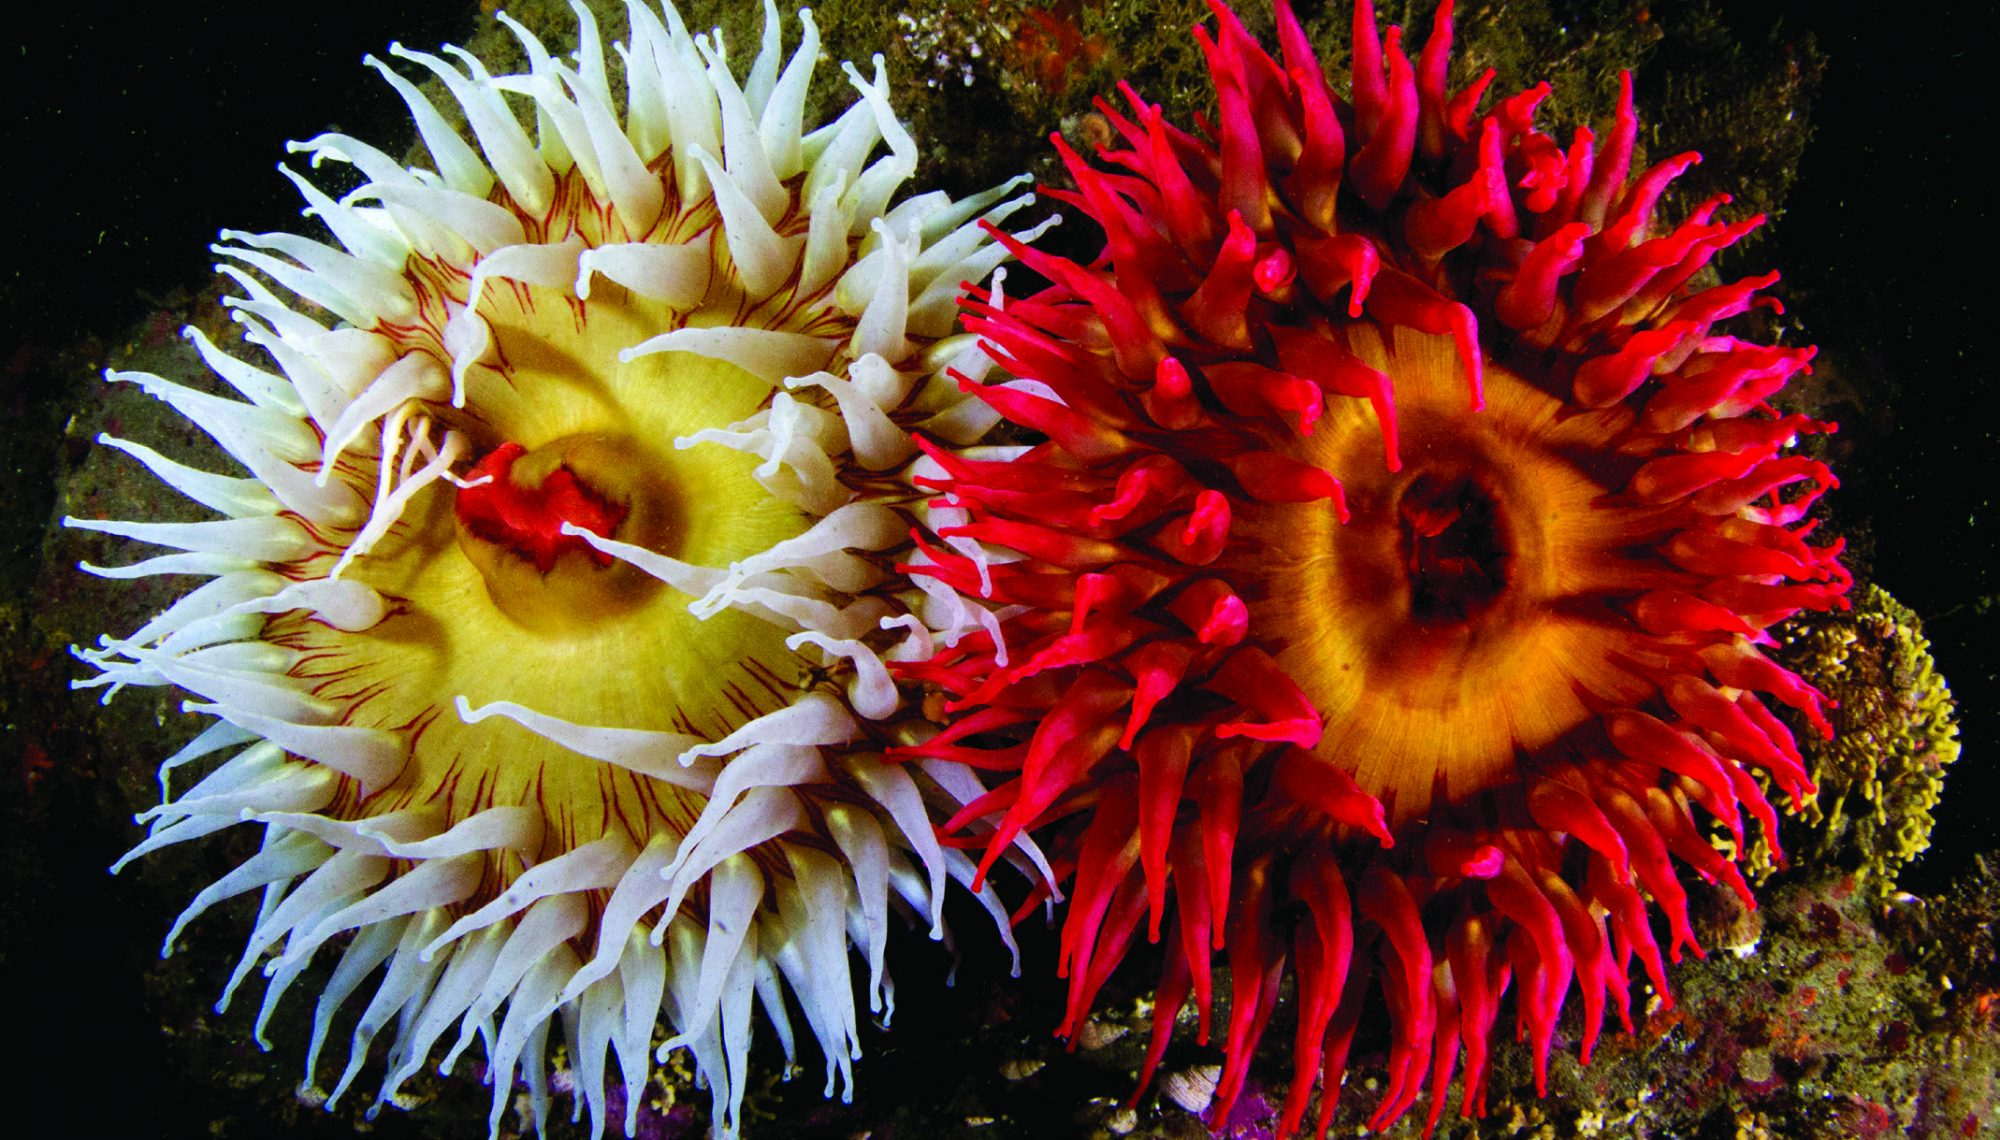 anemones burst with color in the Salish Sea